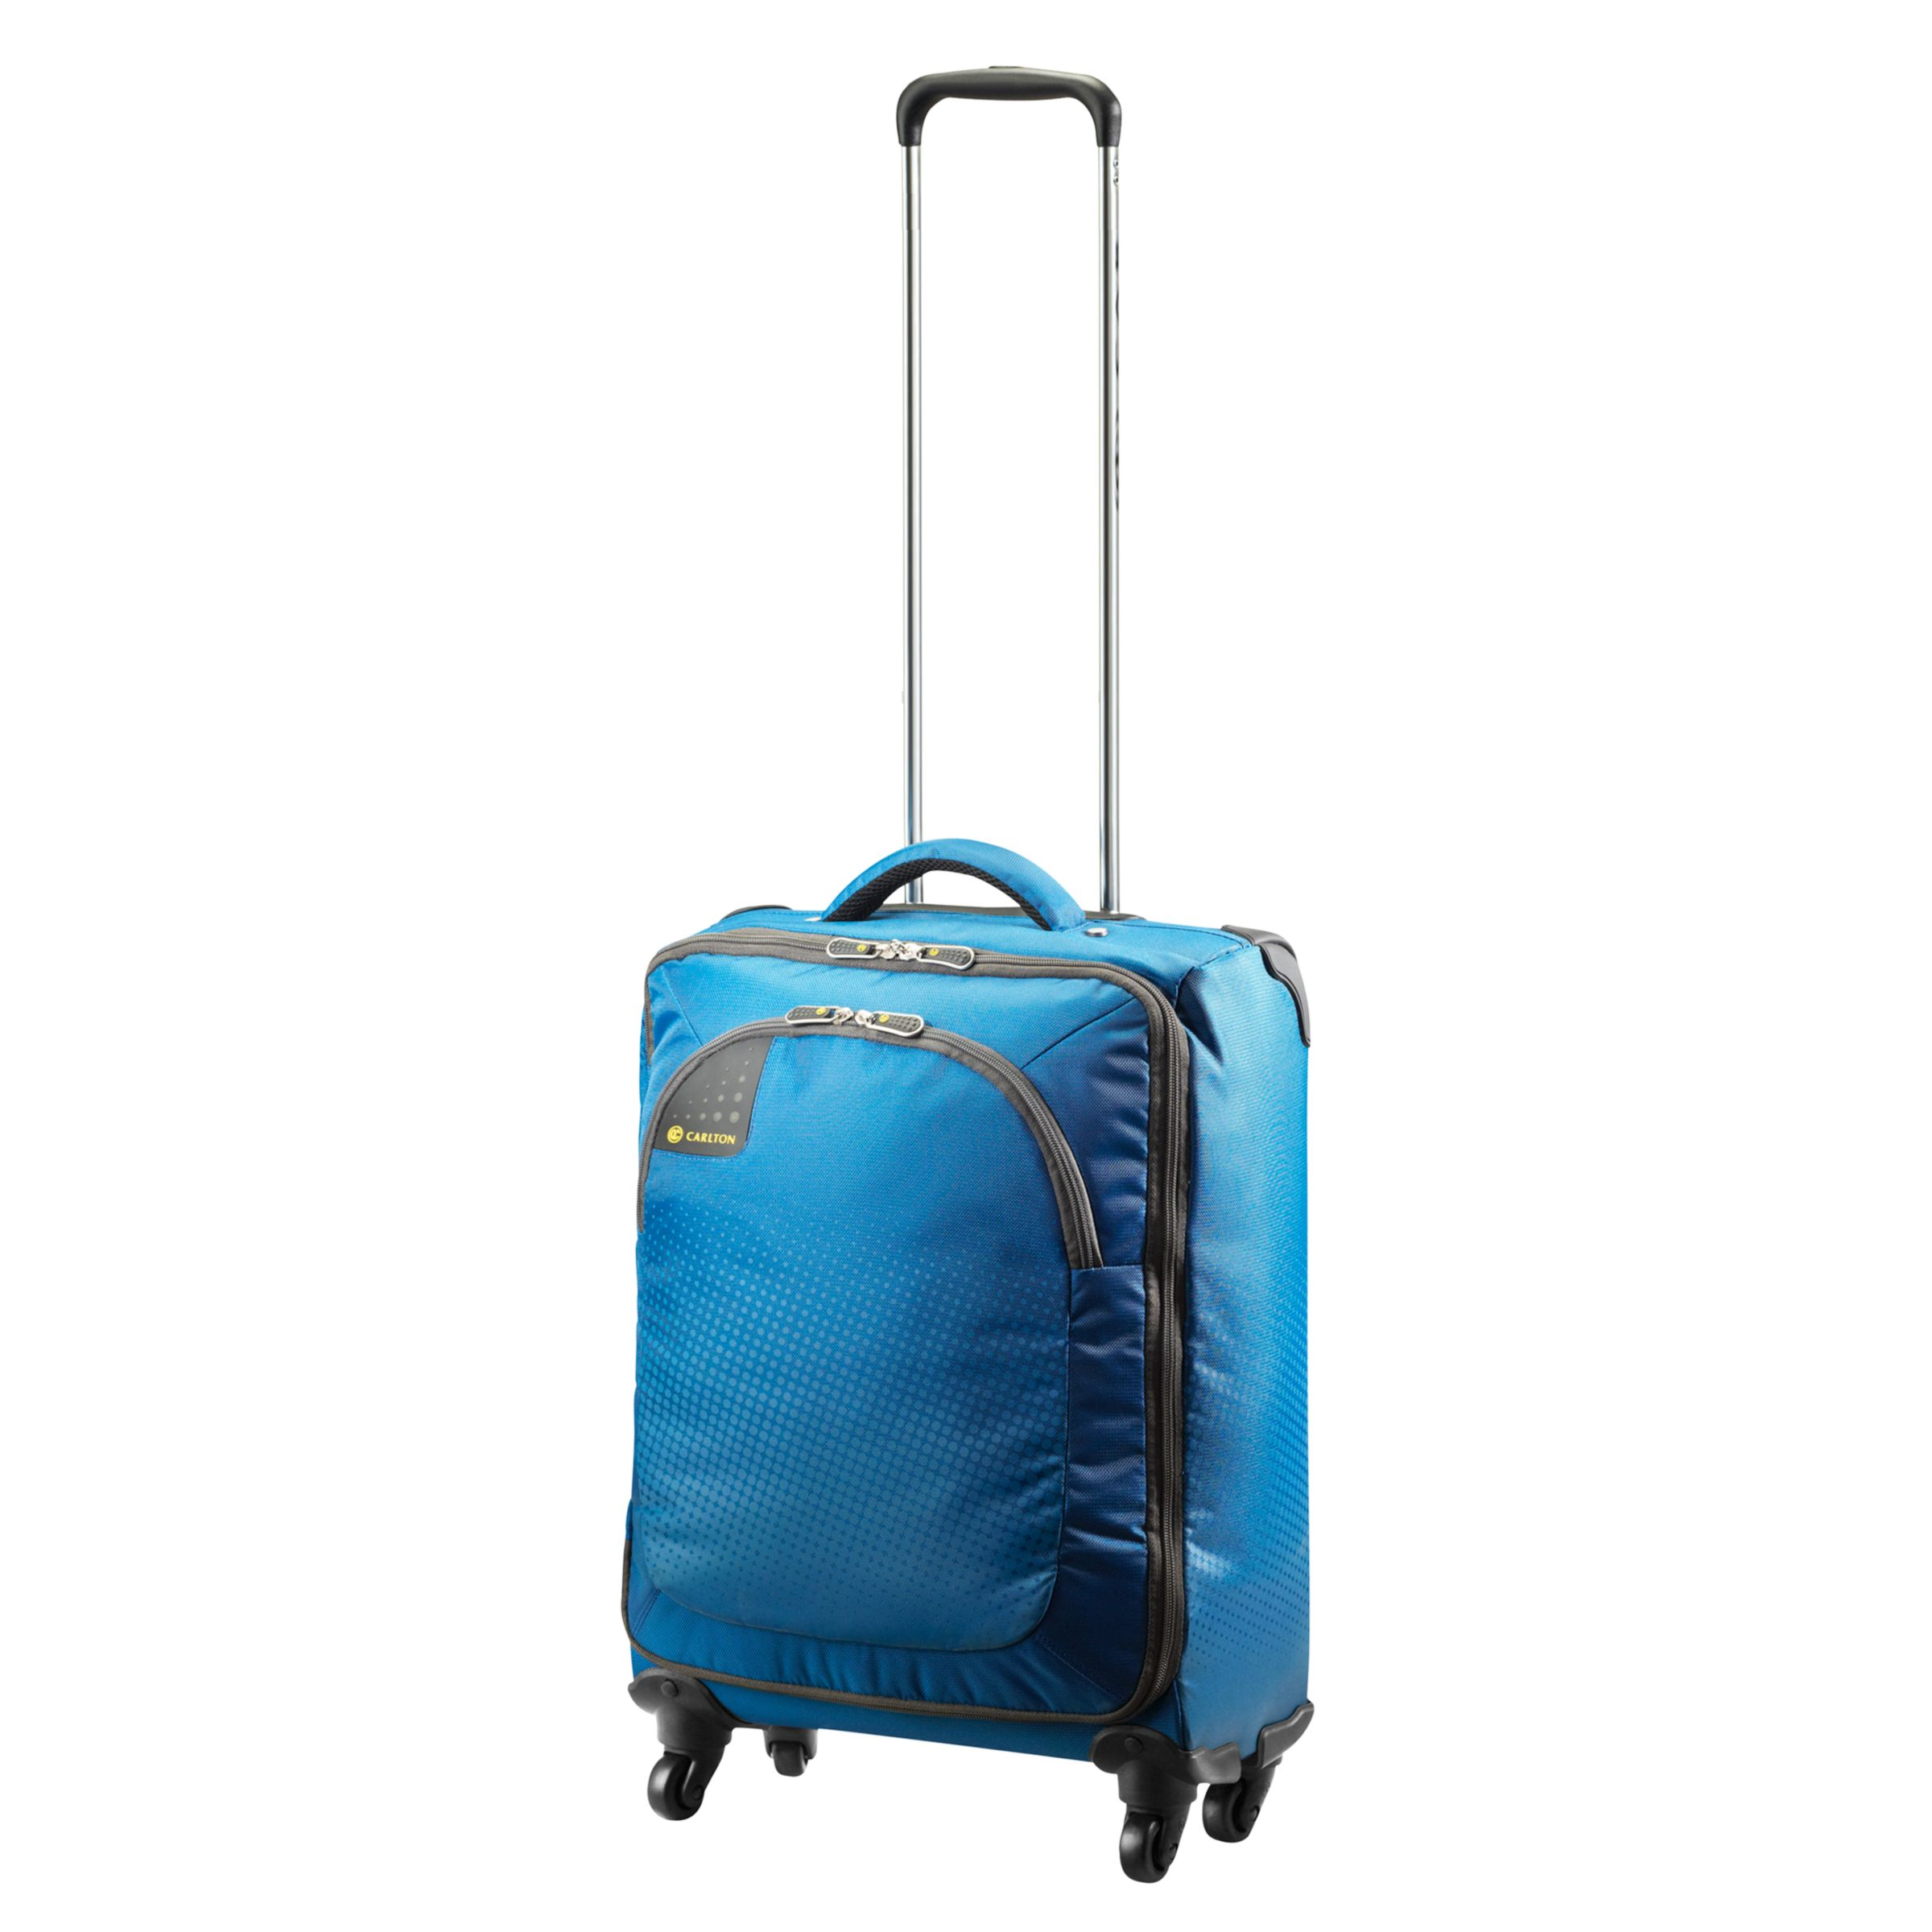 Carlton Tribe 4-Wheel Spinner Suitcase, Caribbean Blue, Small